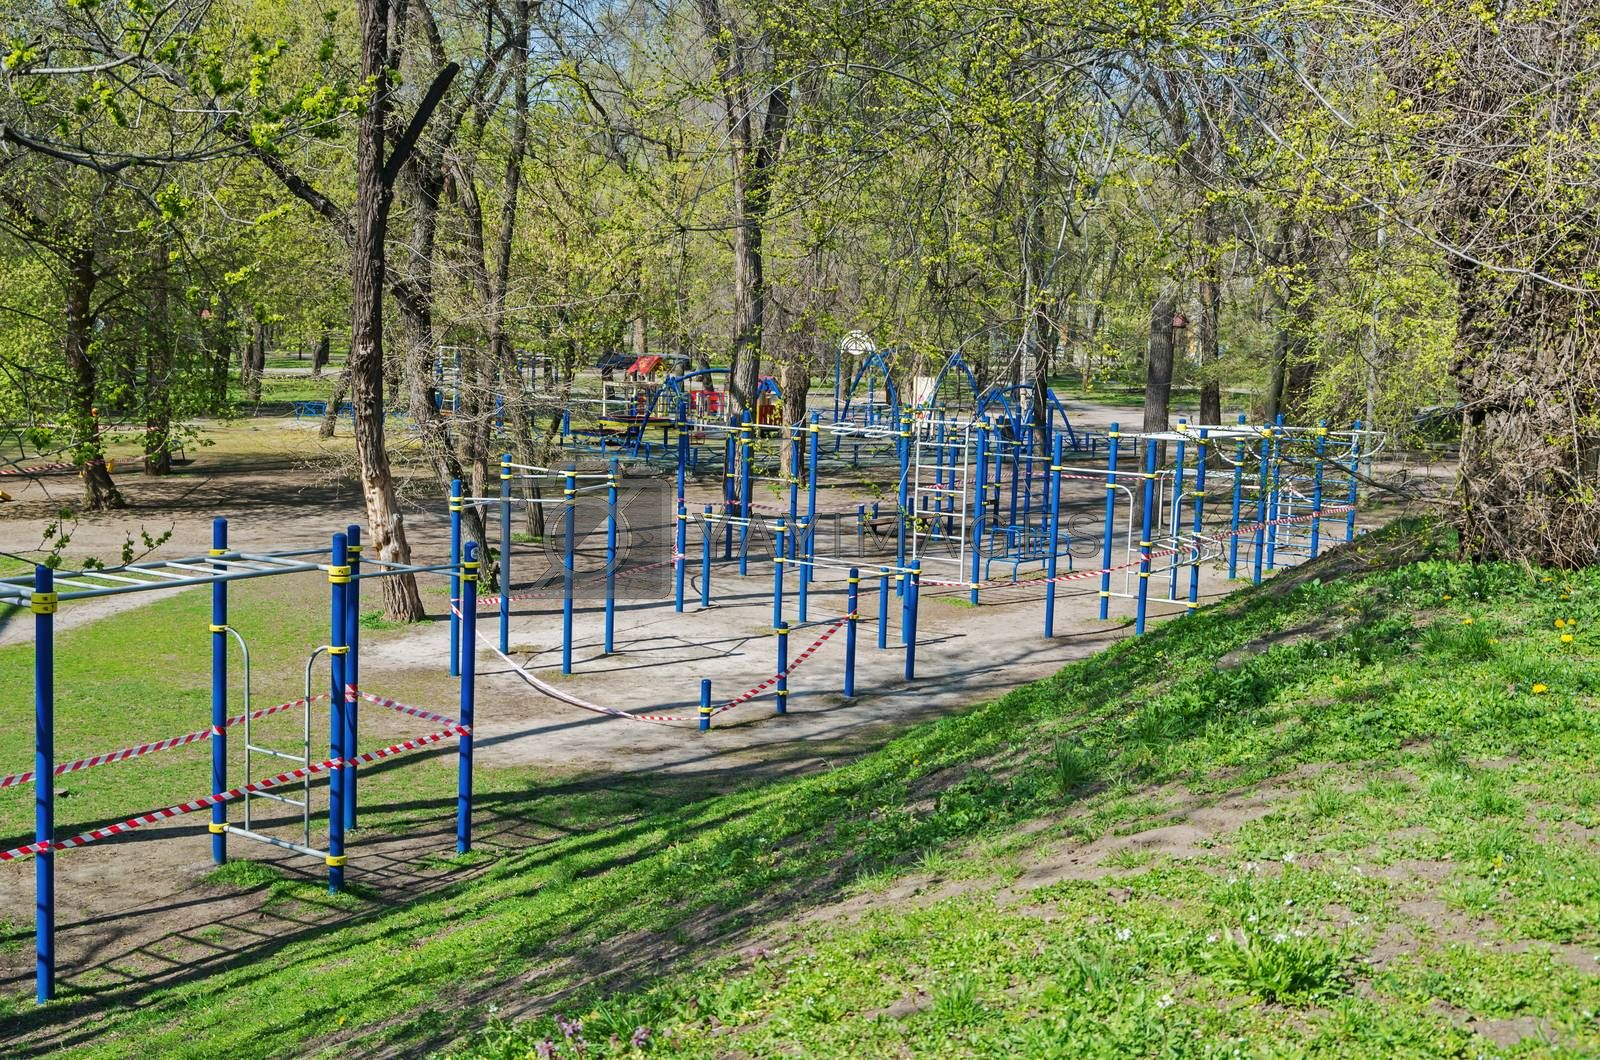 Sports playground in old city park is fenced with barricade tape during COVID-19 coronavirus infection pandemic. It is forbidden to be in public places during quarantine